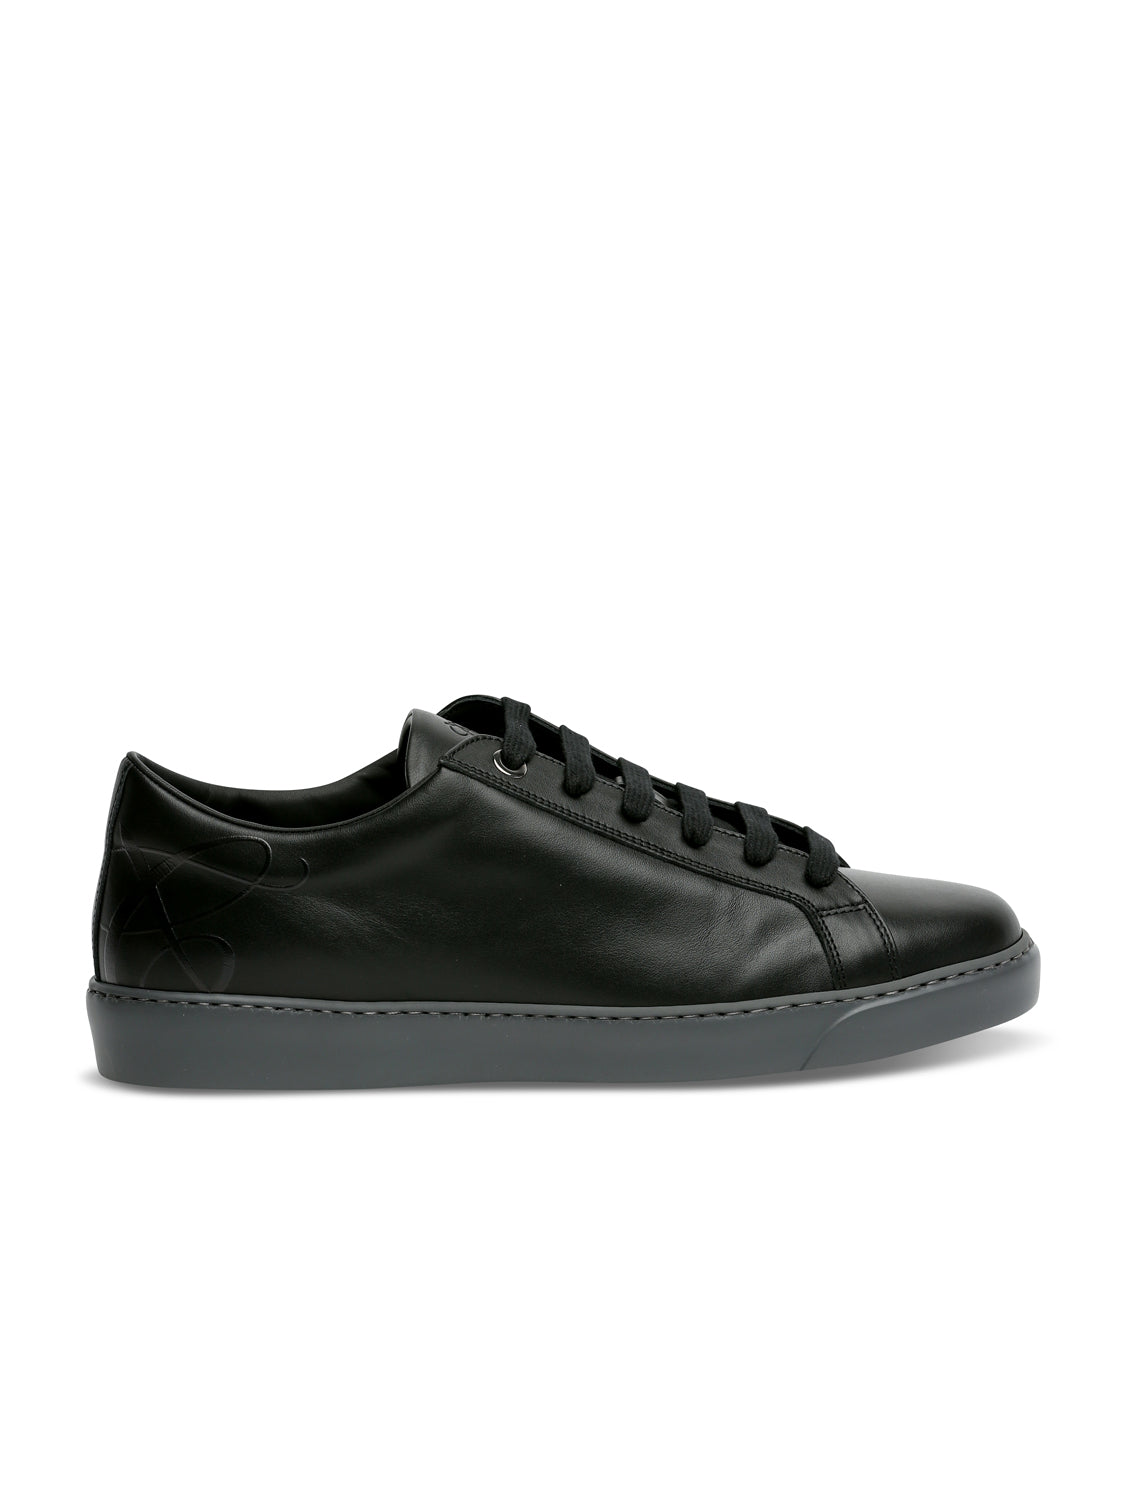 Canali Low Top Trainer (Black)